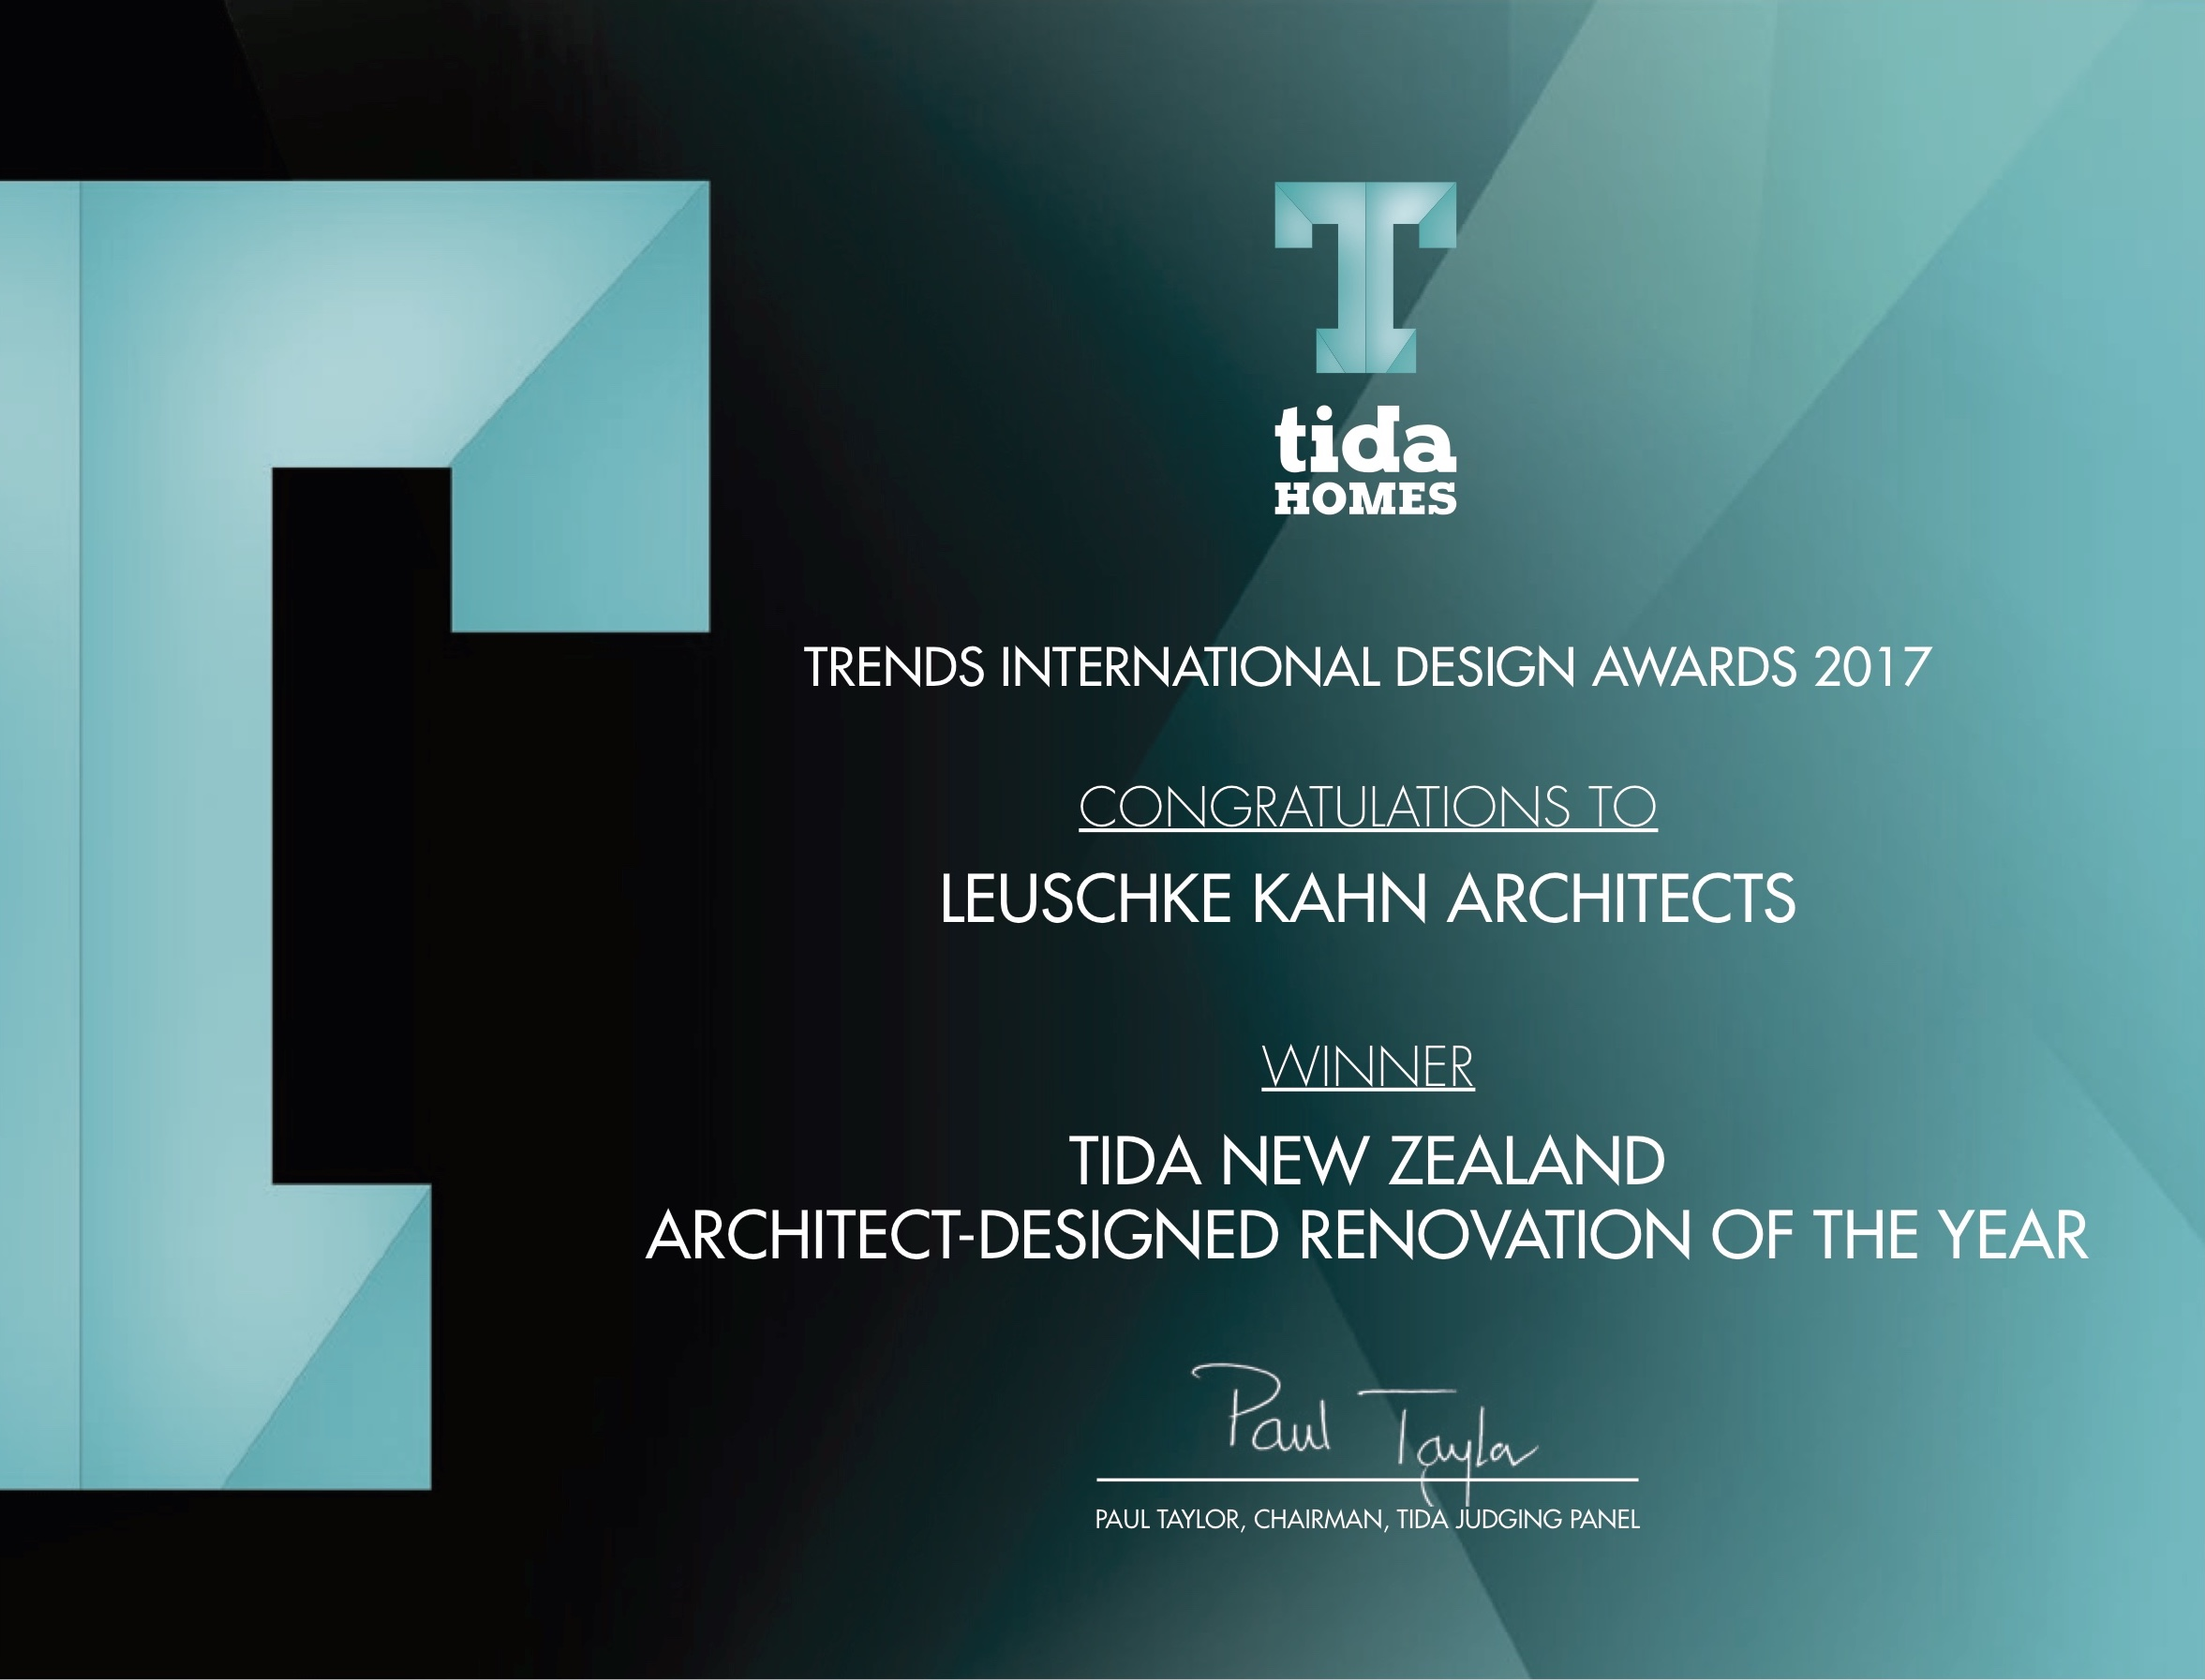 Architect-Designed Renovation of the Year - TIDA Awards 2017